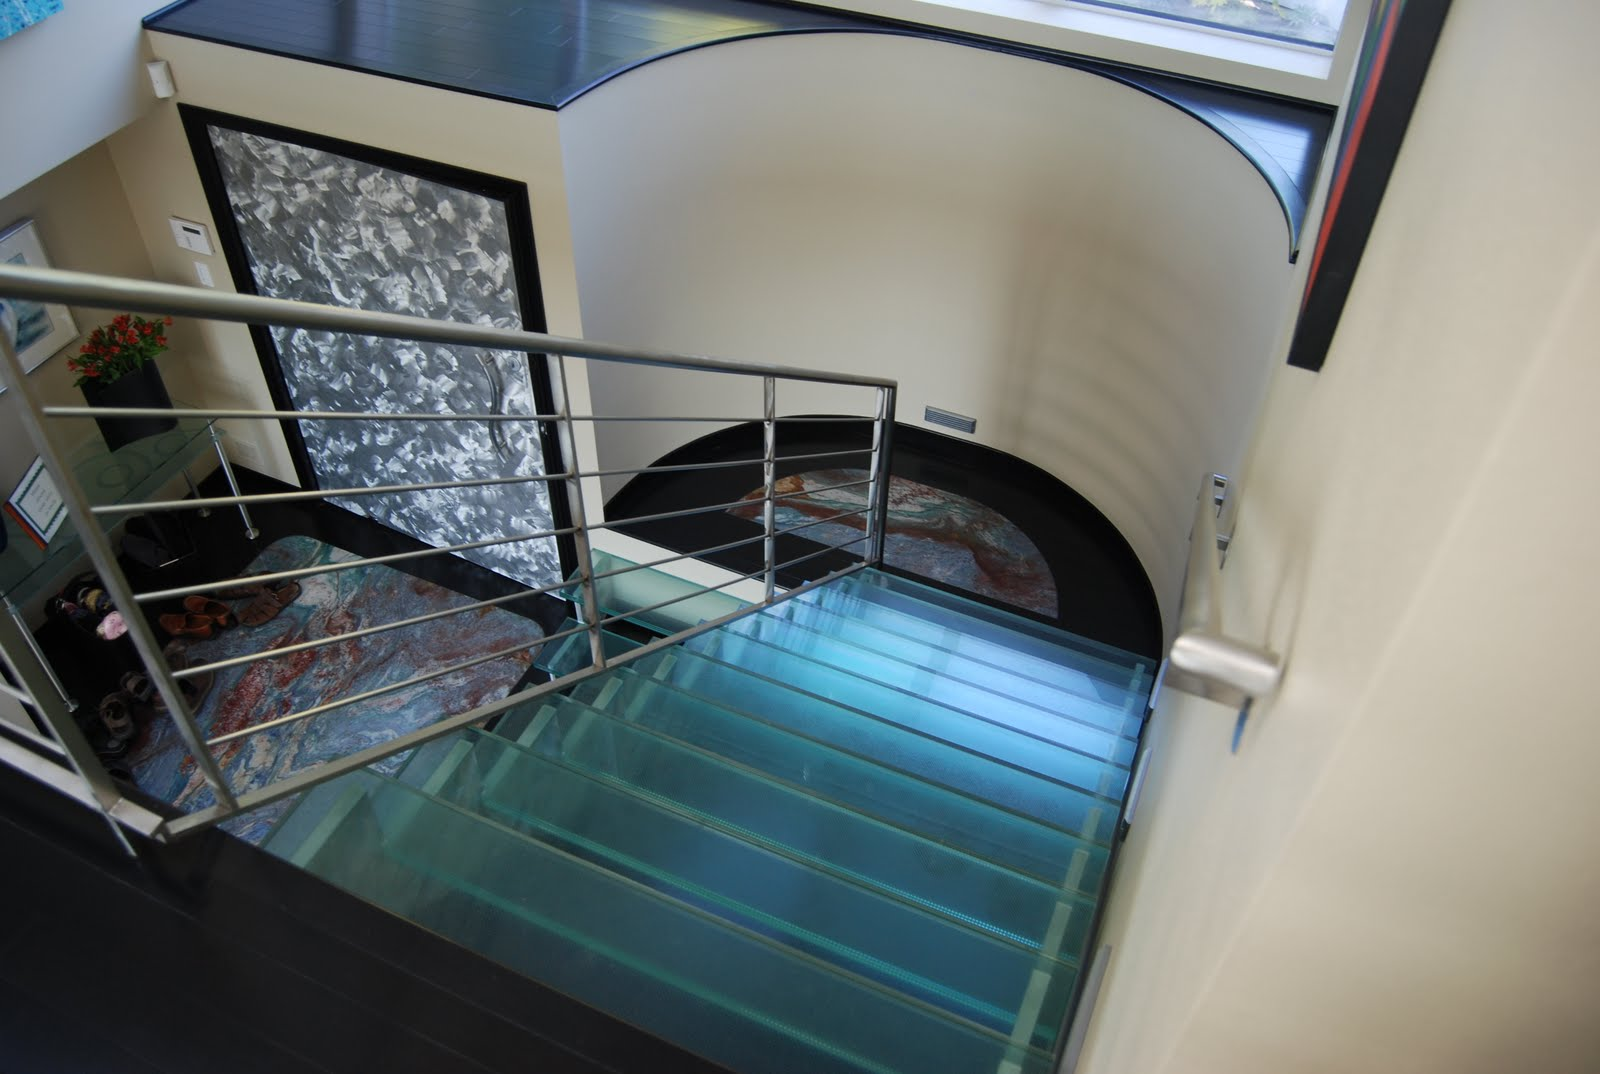 Air as you step off the second floor and onto the glass stairs below